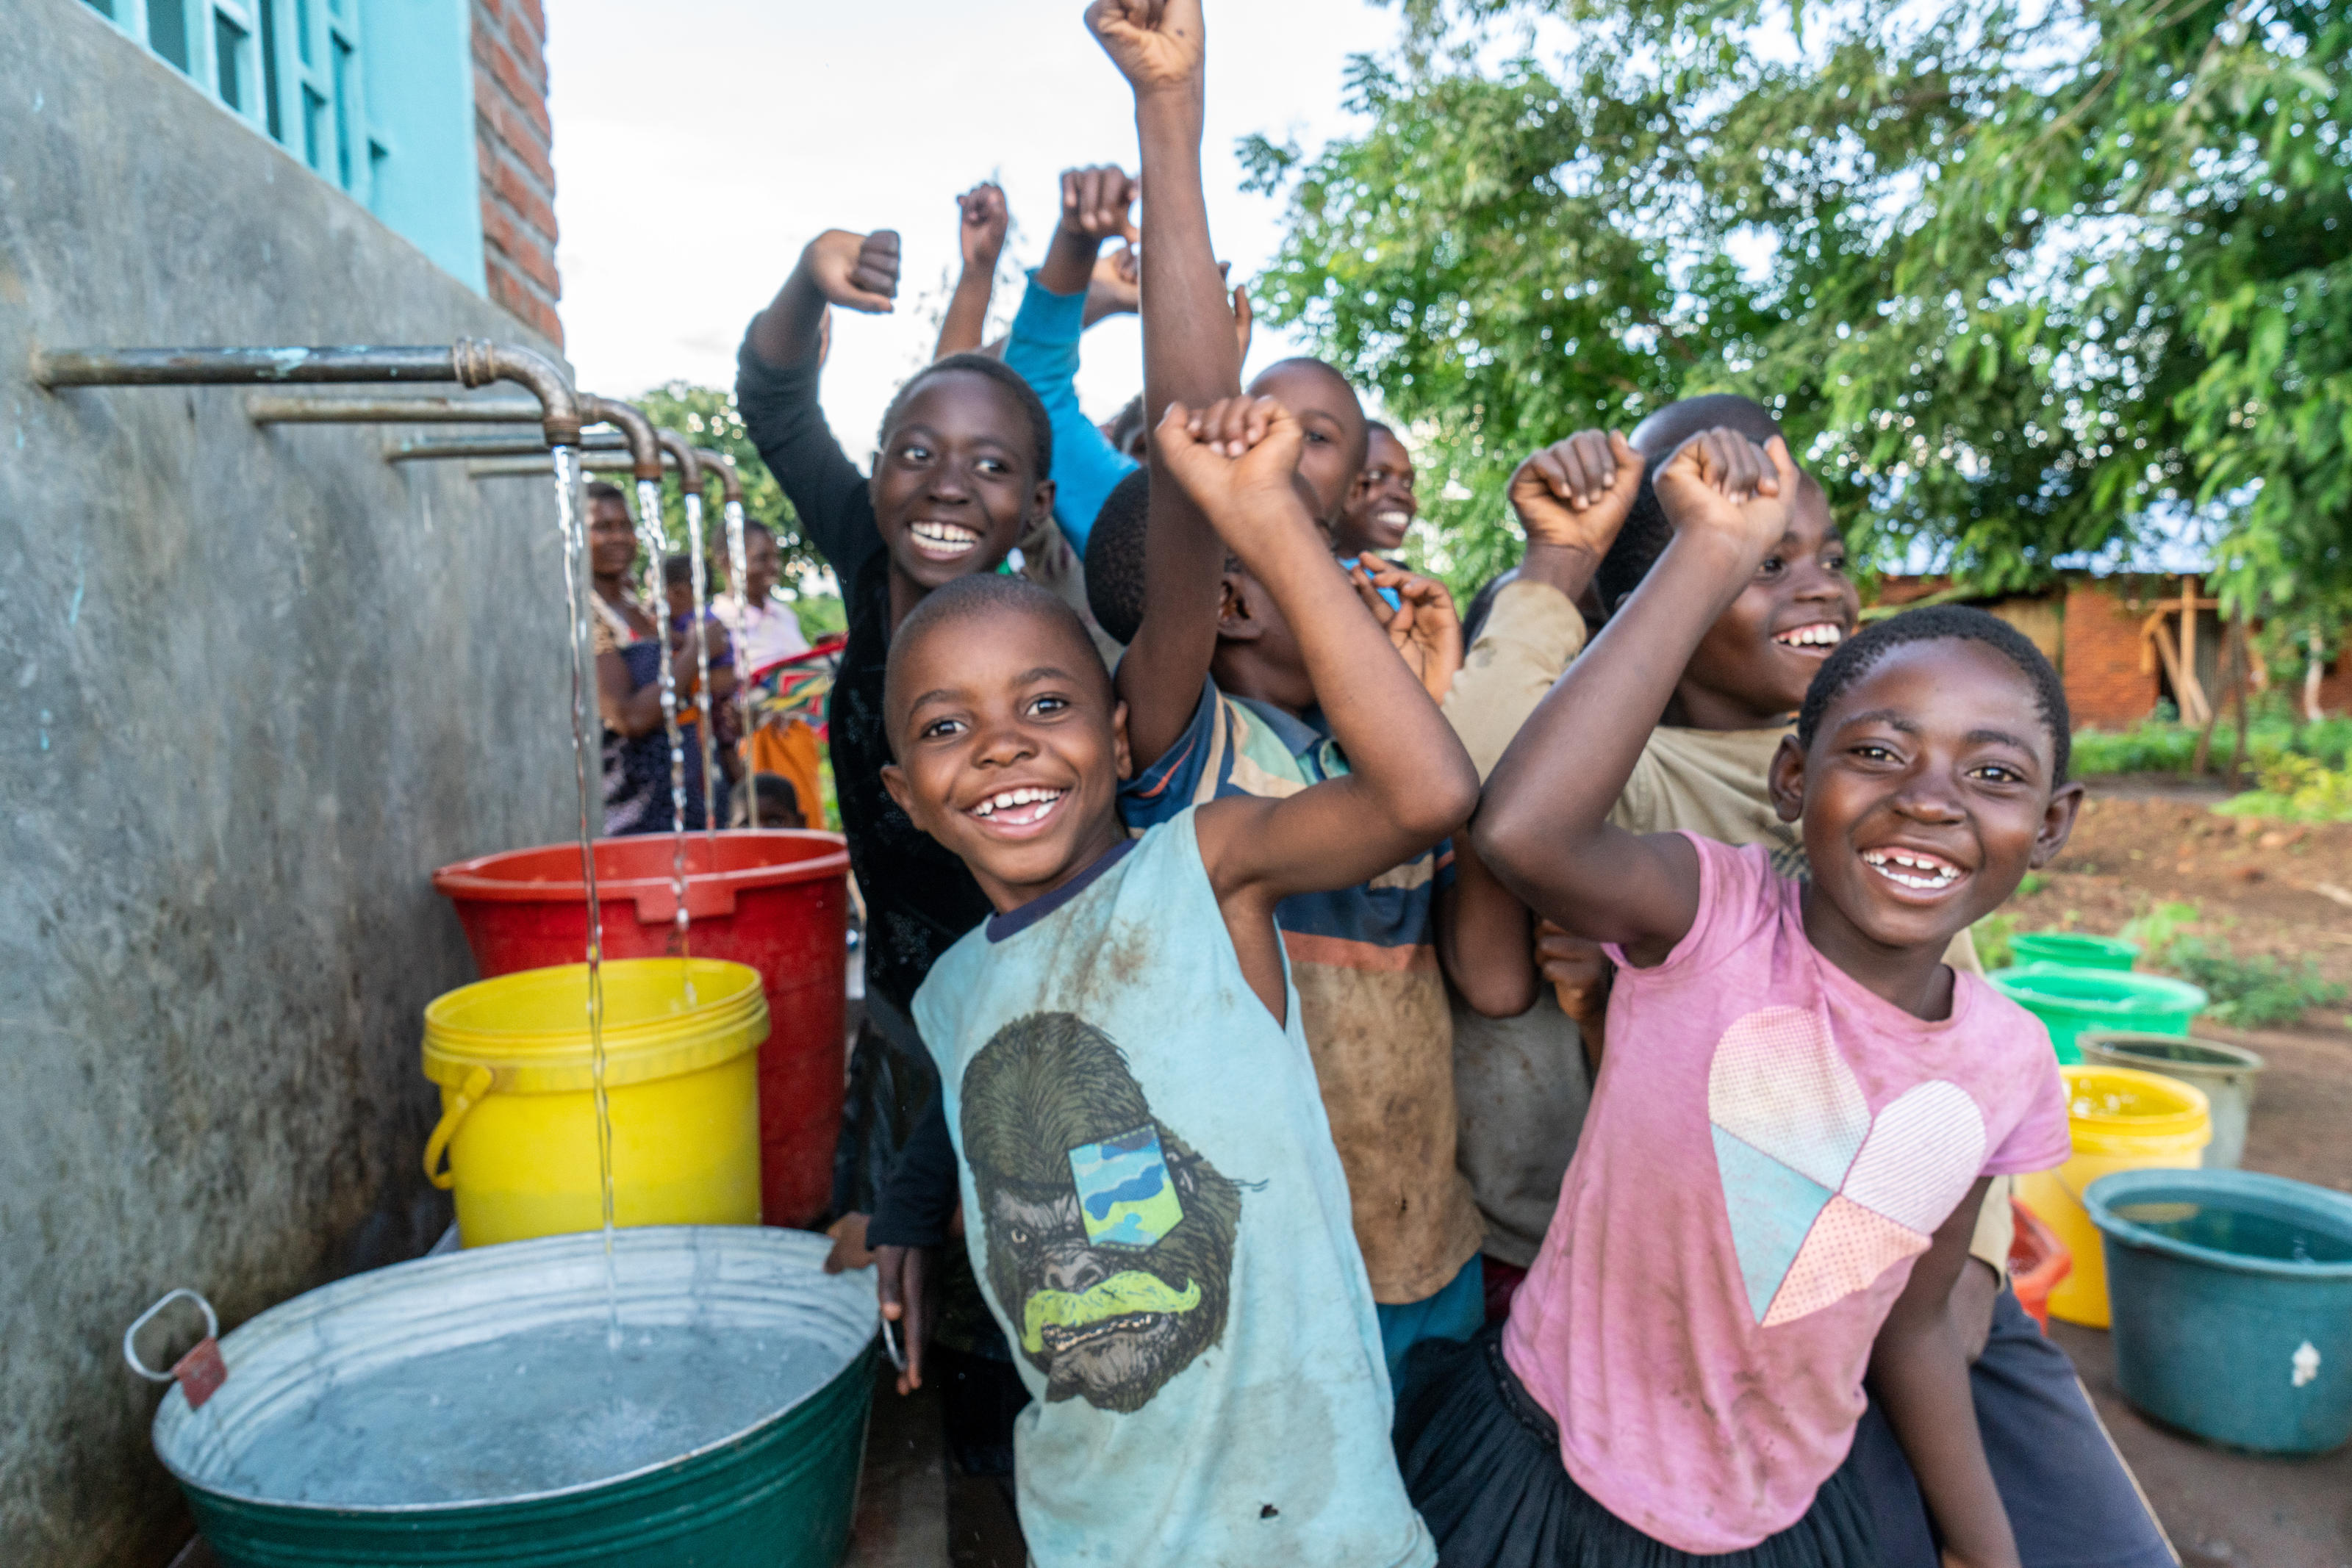 Children from Chiswe village collecting clean water from the new water kiosk.